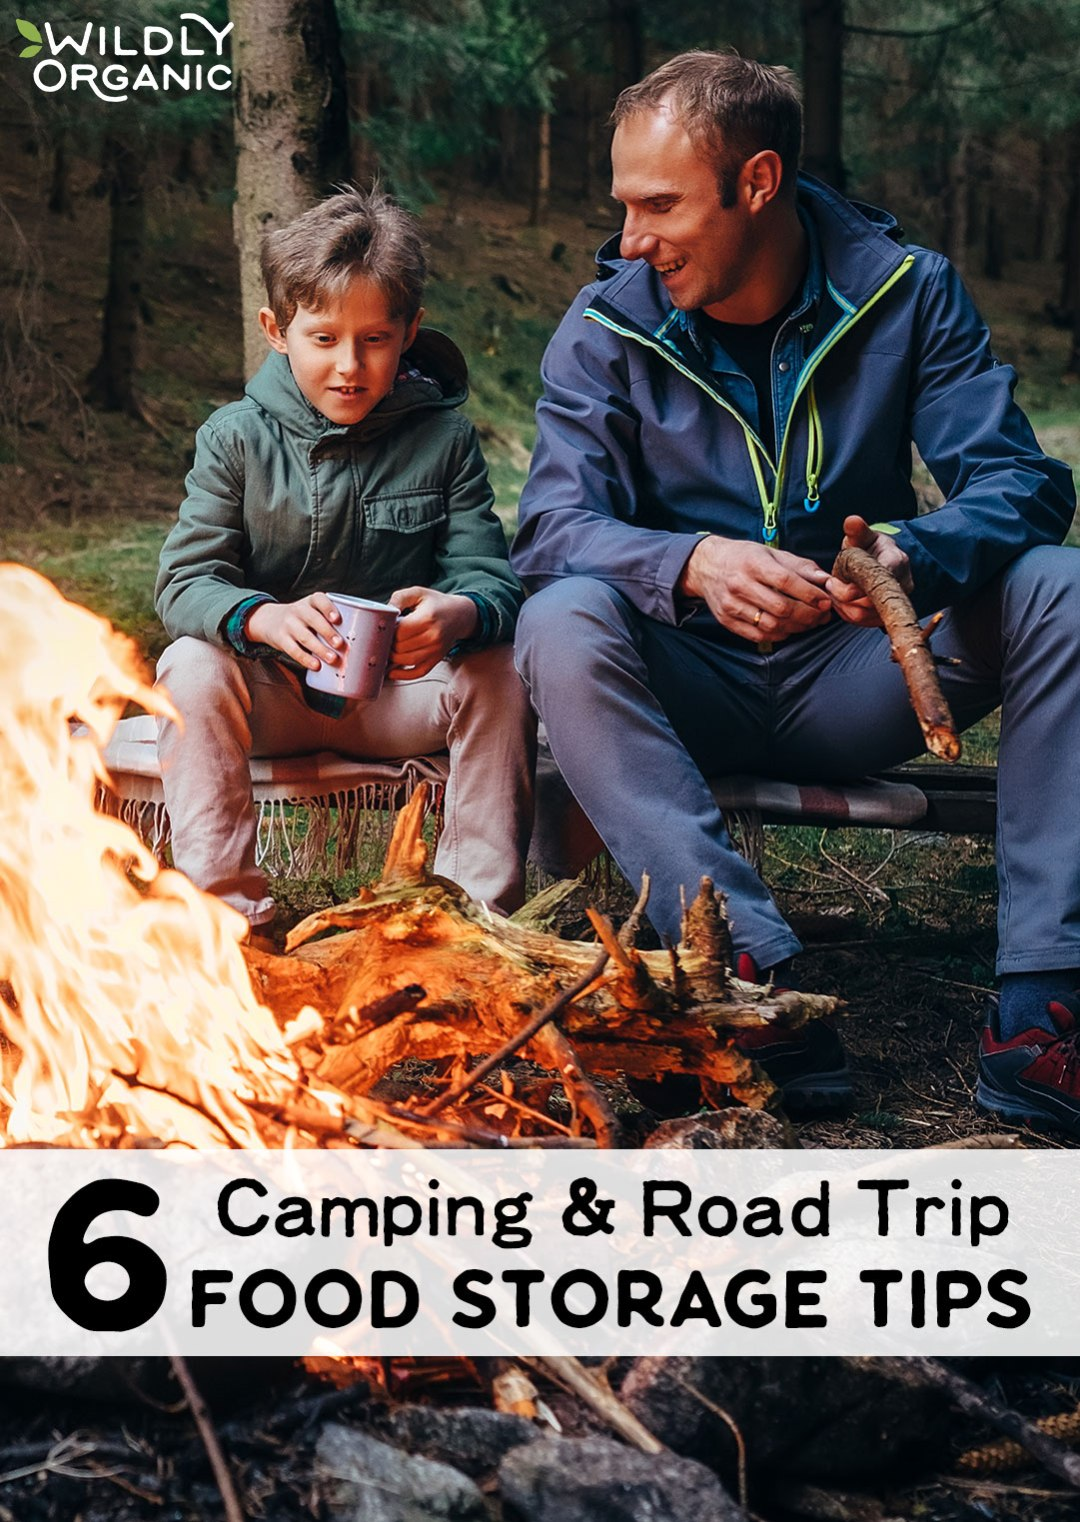 boy with his dad sitting in front of a campfire for camping and road trip food storage tips